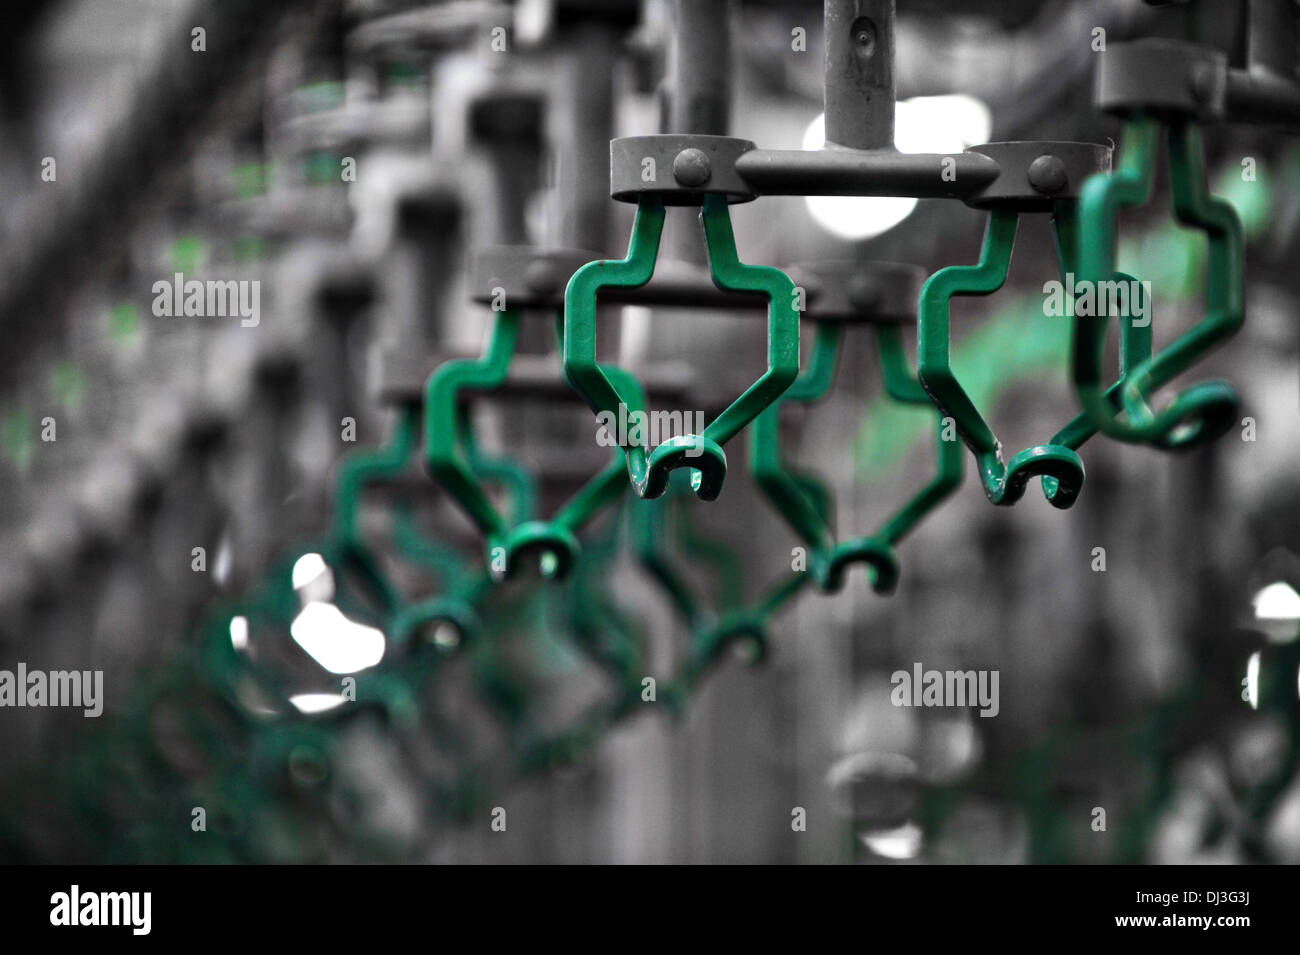 Empty hooks in a poultry meat processing factory - Stock Image